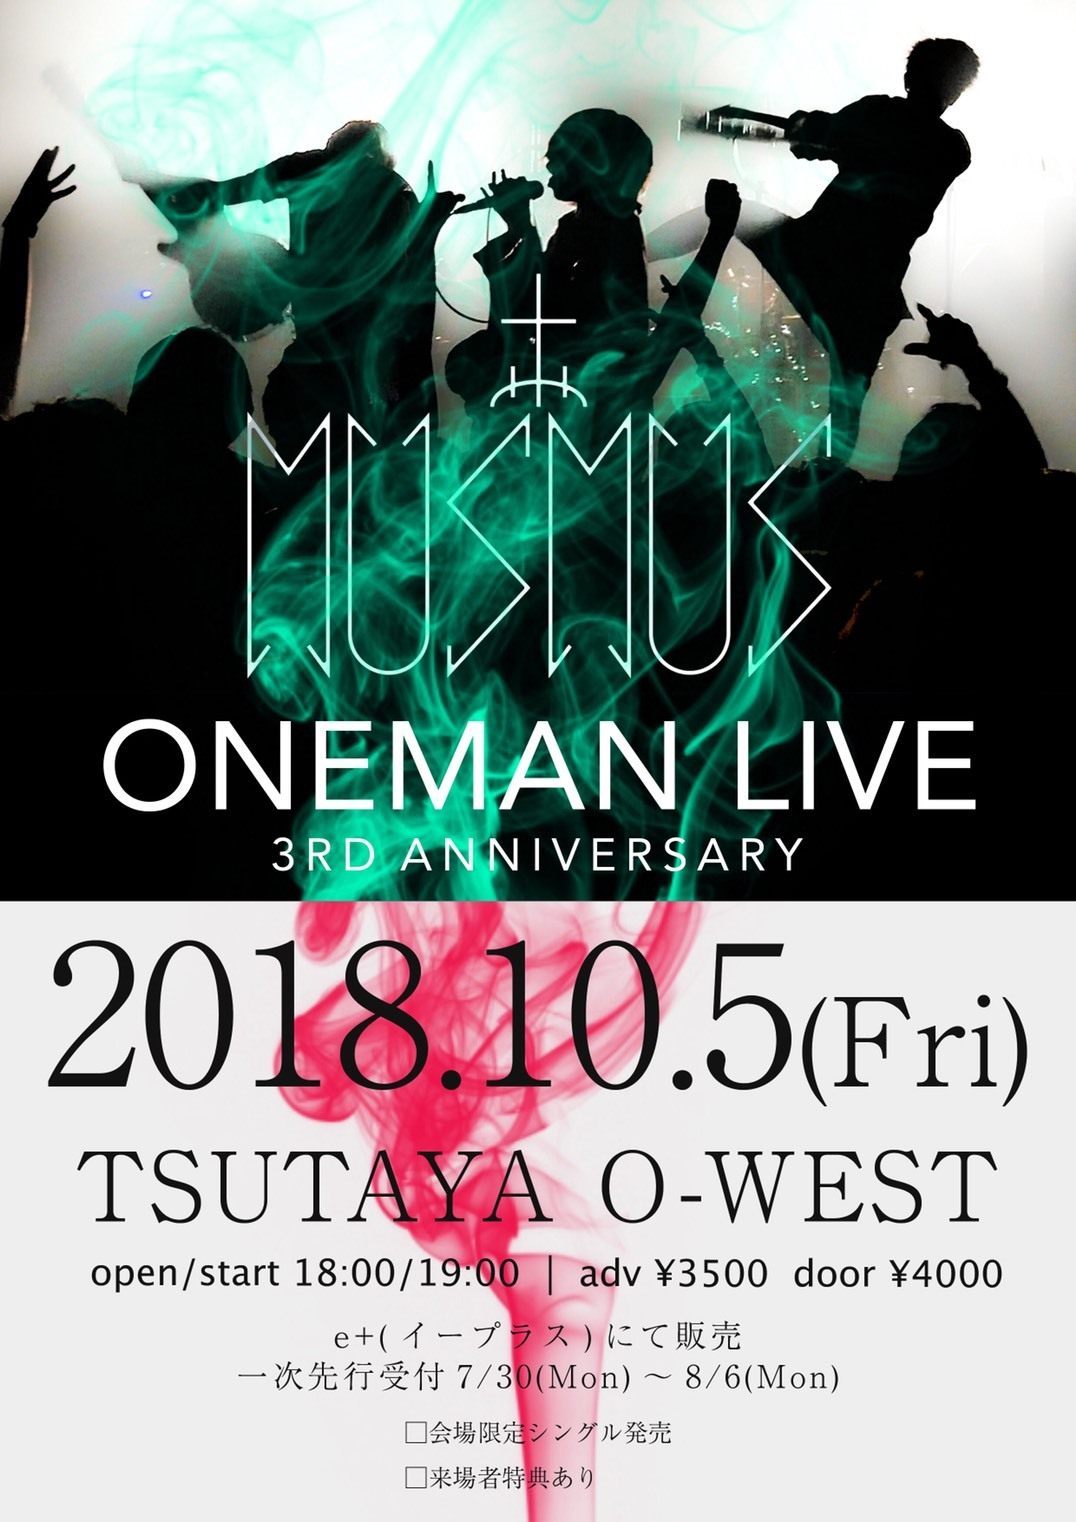 THE MUSMUS presents 『THE MUSMUS ONEMAN LIVE 〜3rd ANNIVERSARY~』